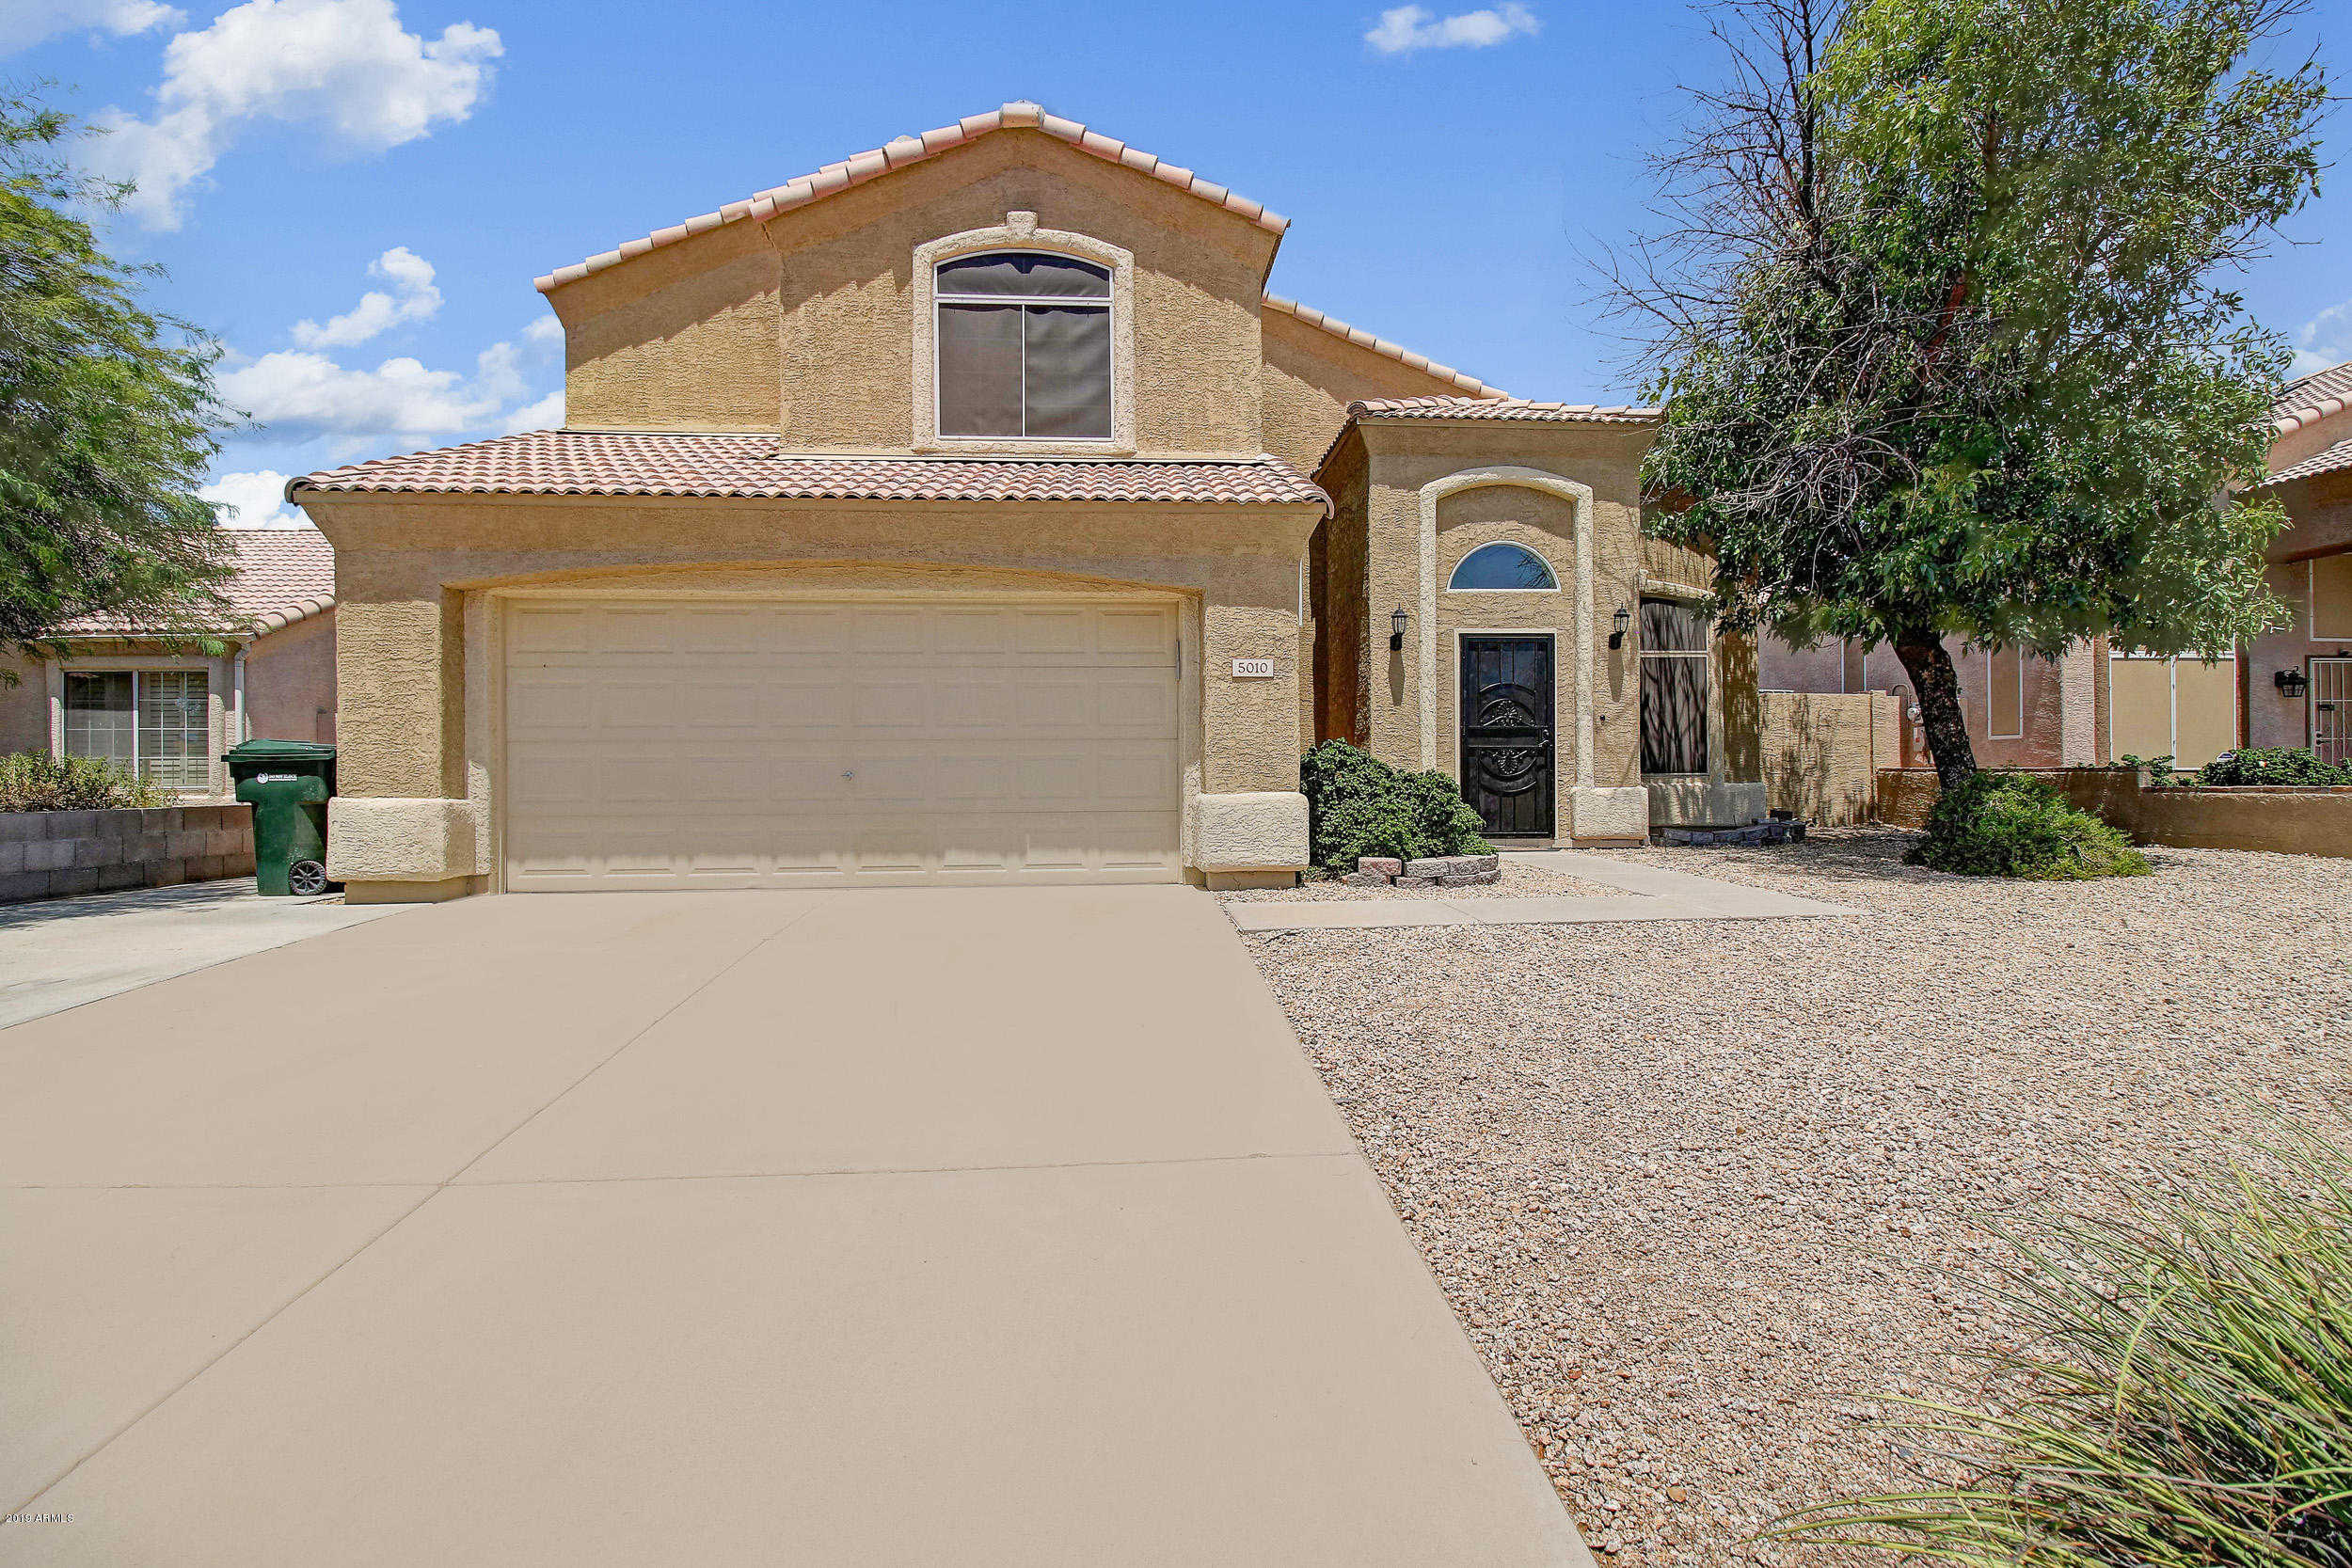 $349,900 - 4Br/3Ba - Home for Sale in Windrose, Glendale